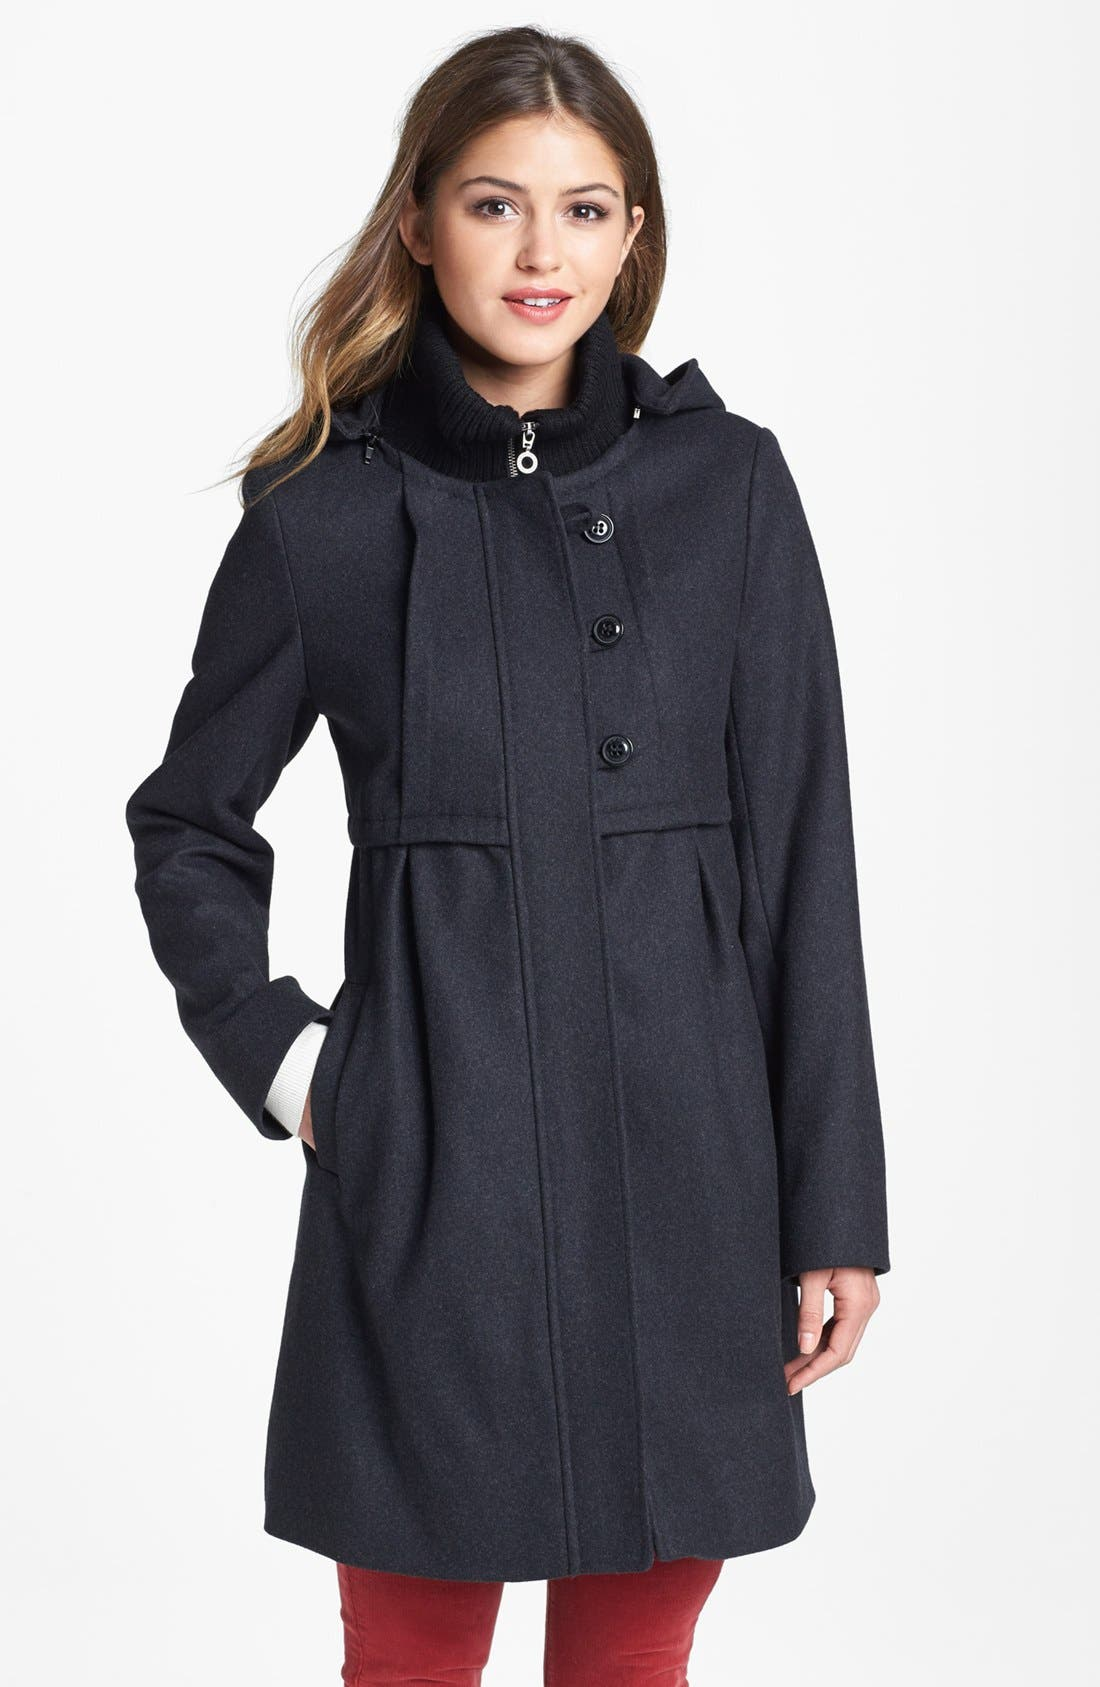 Alternate Image 1 Selected - DKNY Knit Collar Babydoll Coat with Detachable Hood (Online Only)